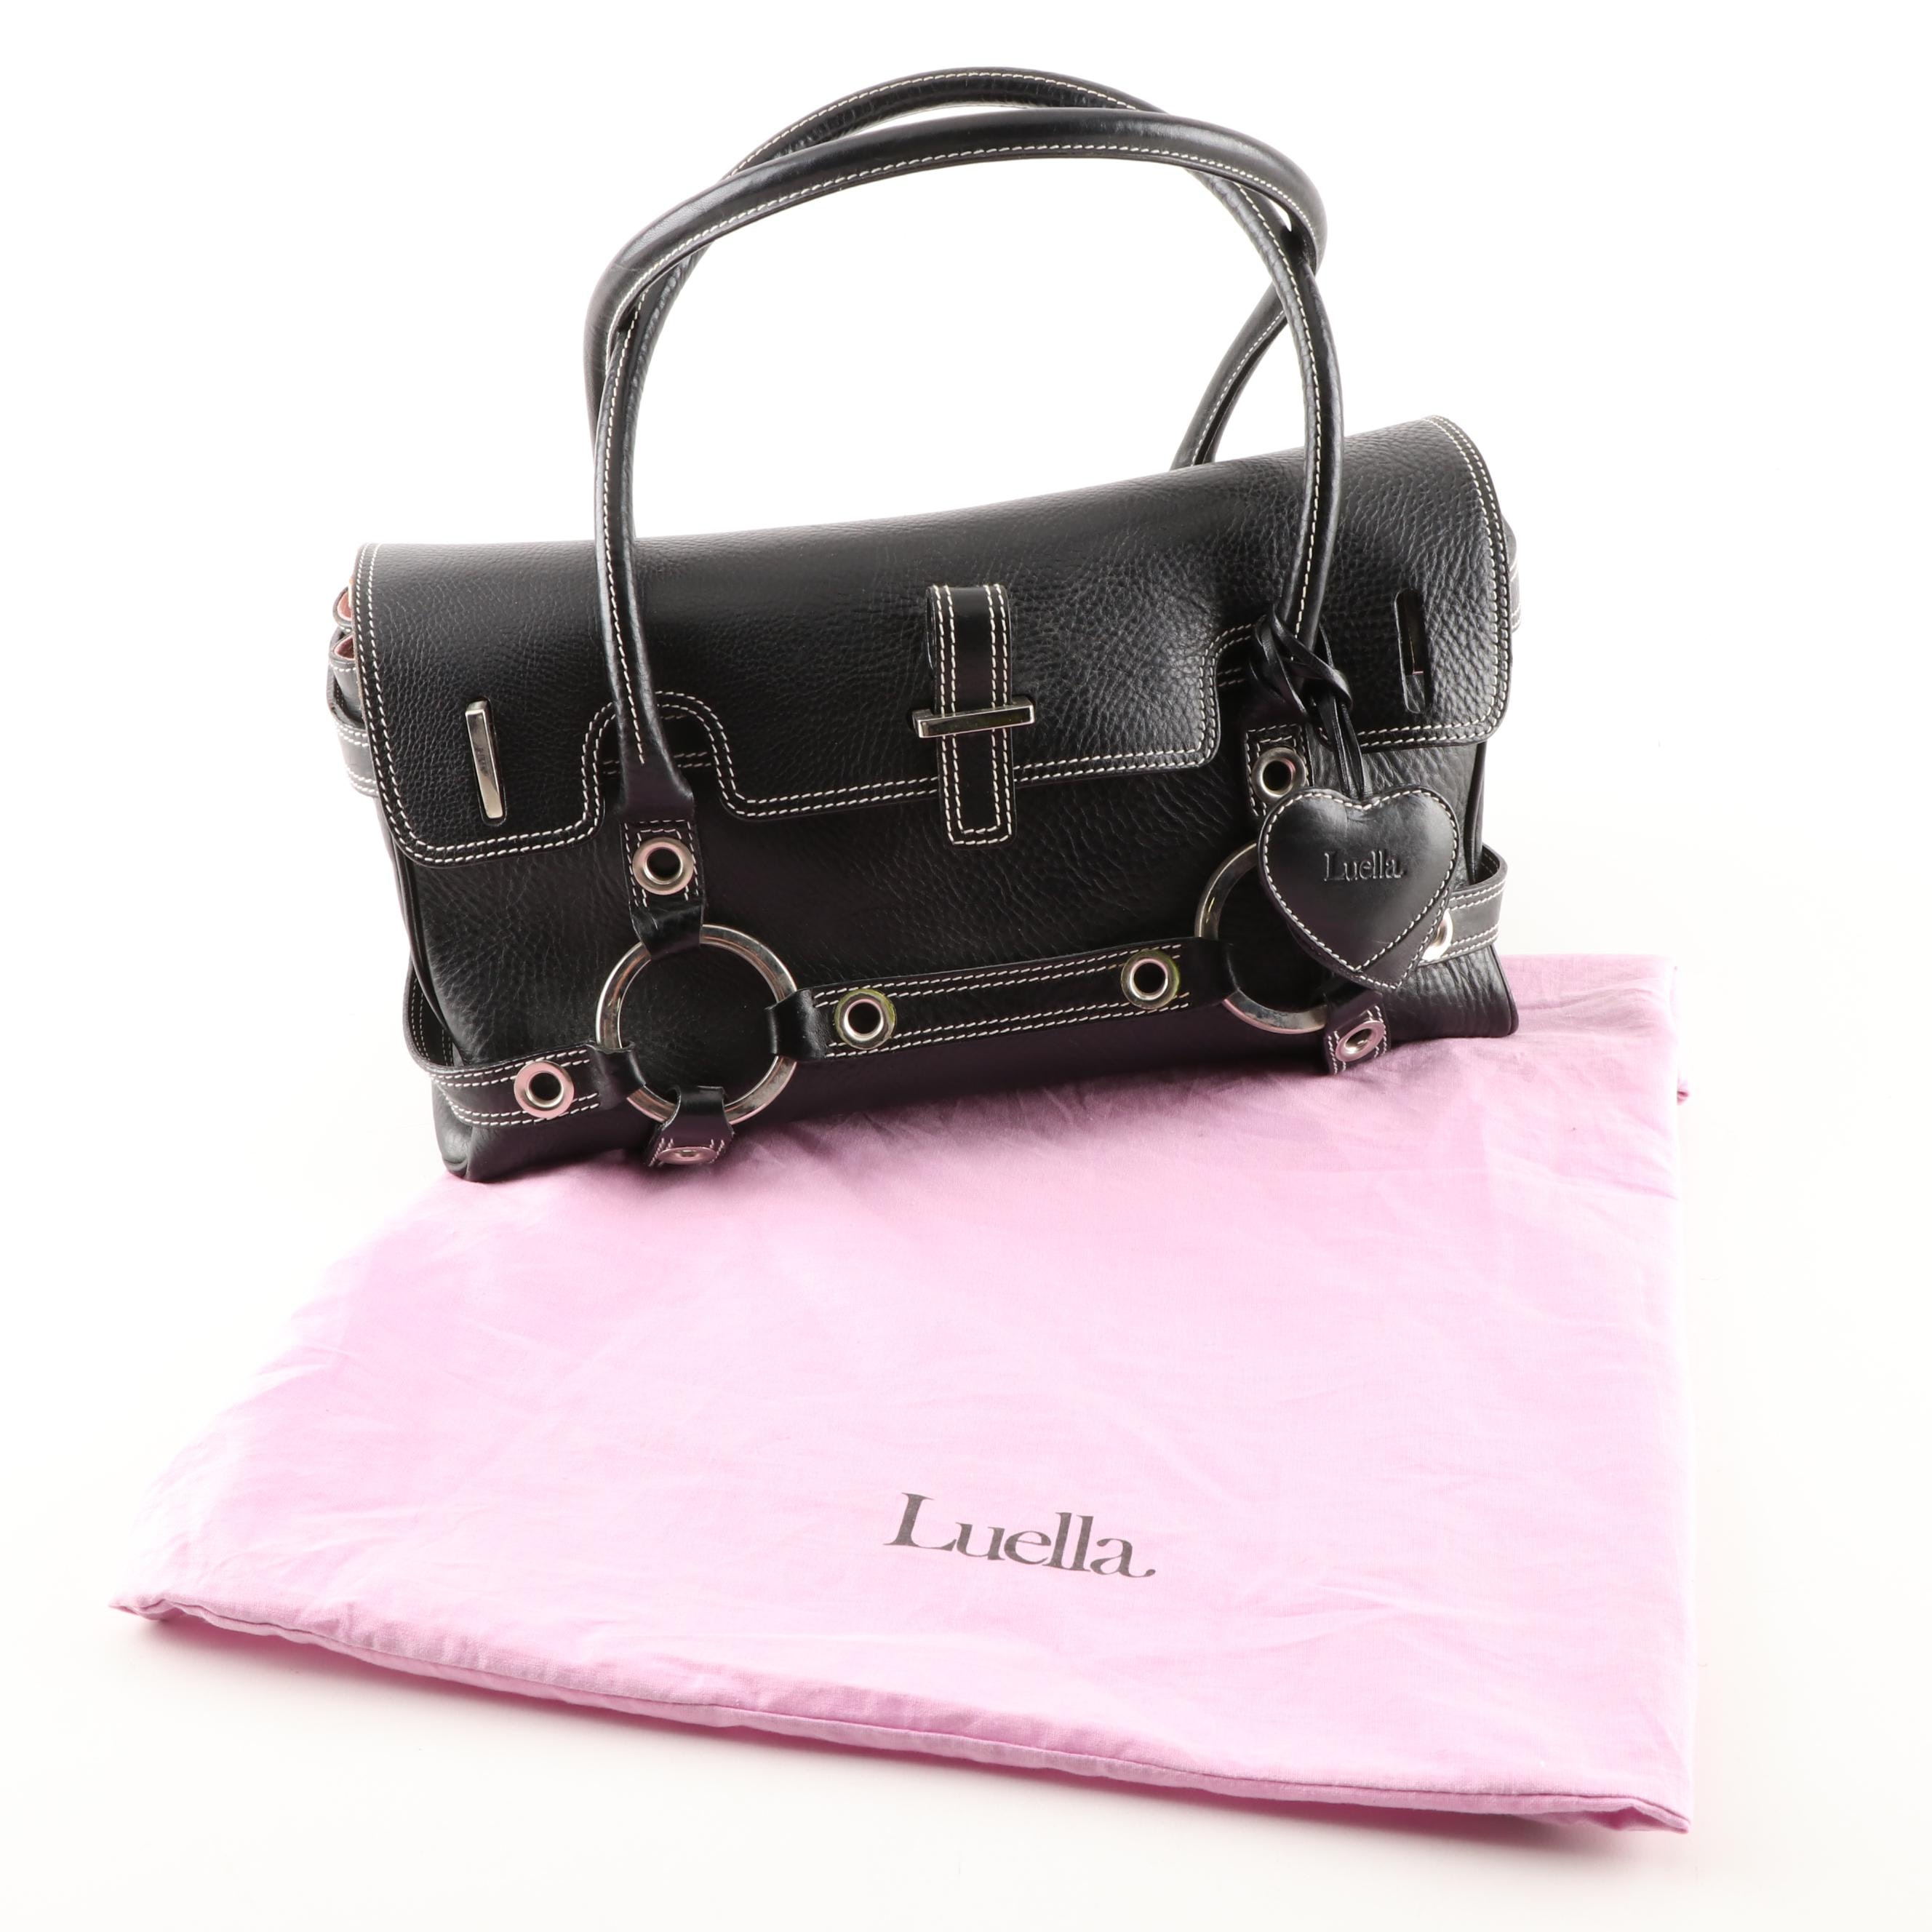 Luella Black Pebbled Leather Satchel with Contrast Stitching